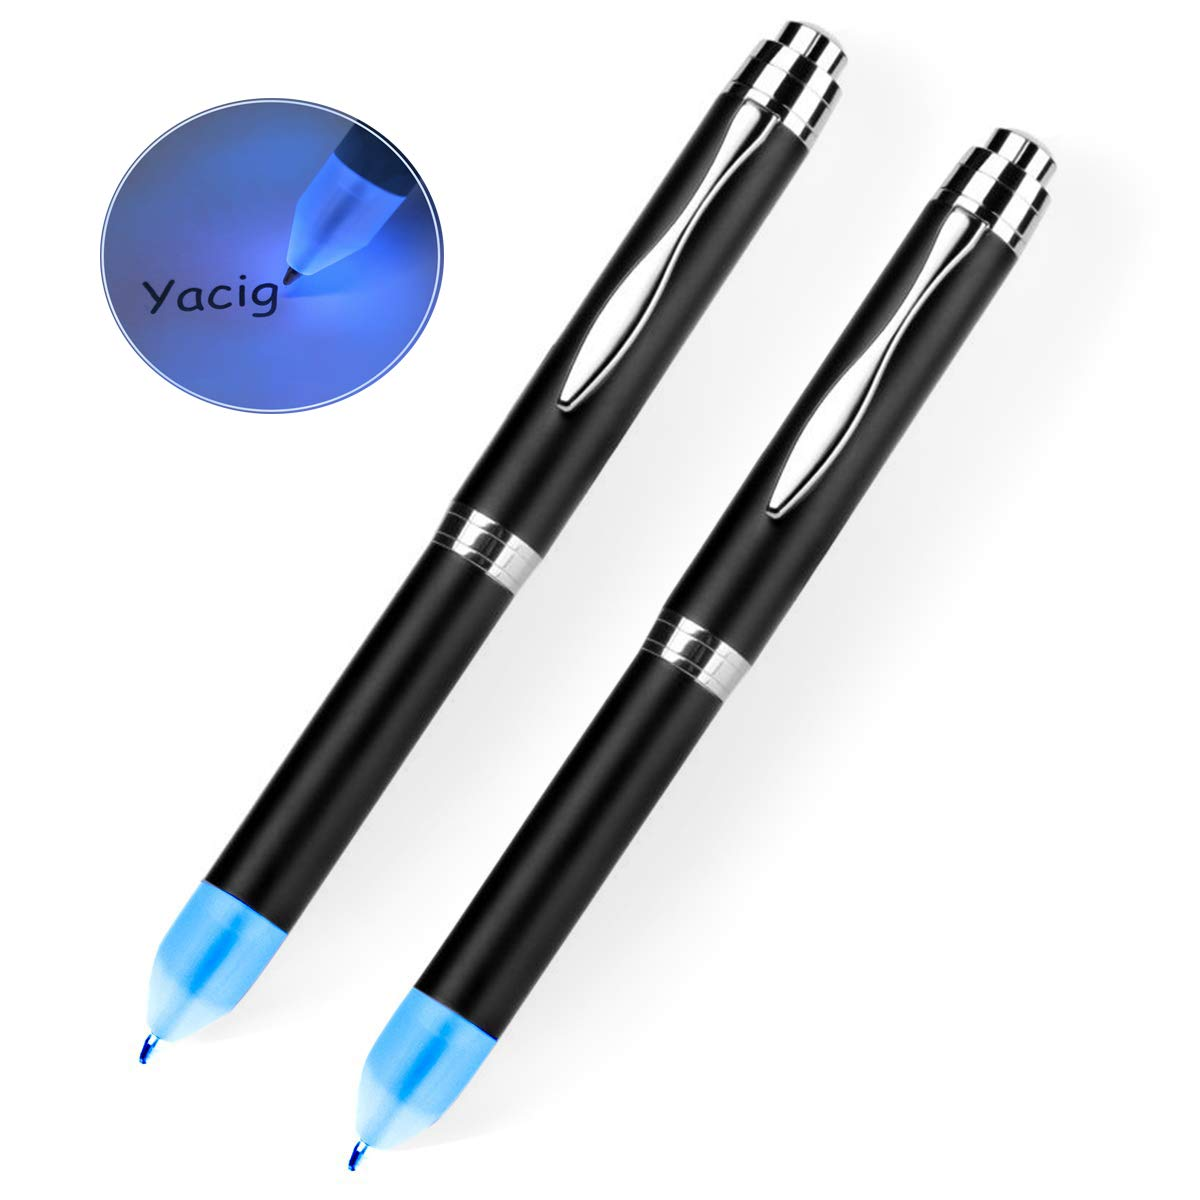 Light Up Pen Yacig Intellectual LED Pen light for Night Writer LED Tactical Lighted Tip Pen, Two Brightness Settings,1x AAA Battery Powered,Easy to Operate, Pack of 2 - Blue